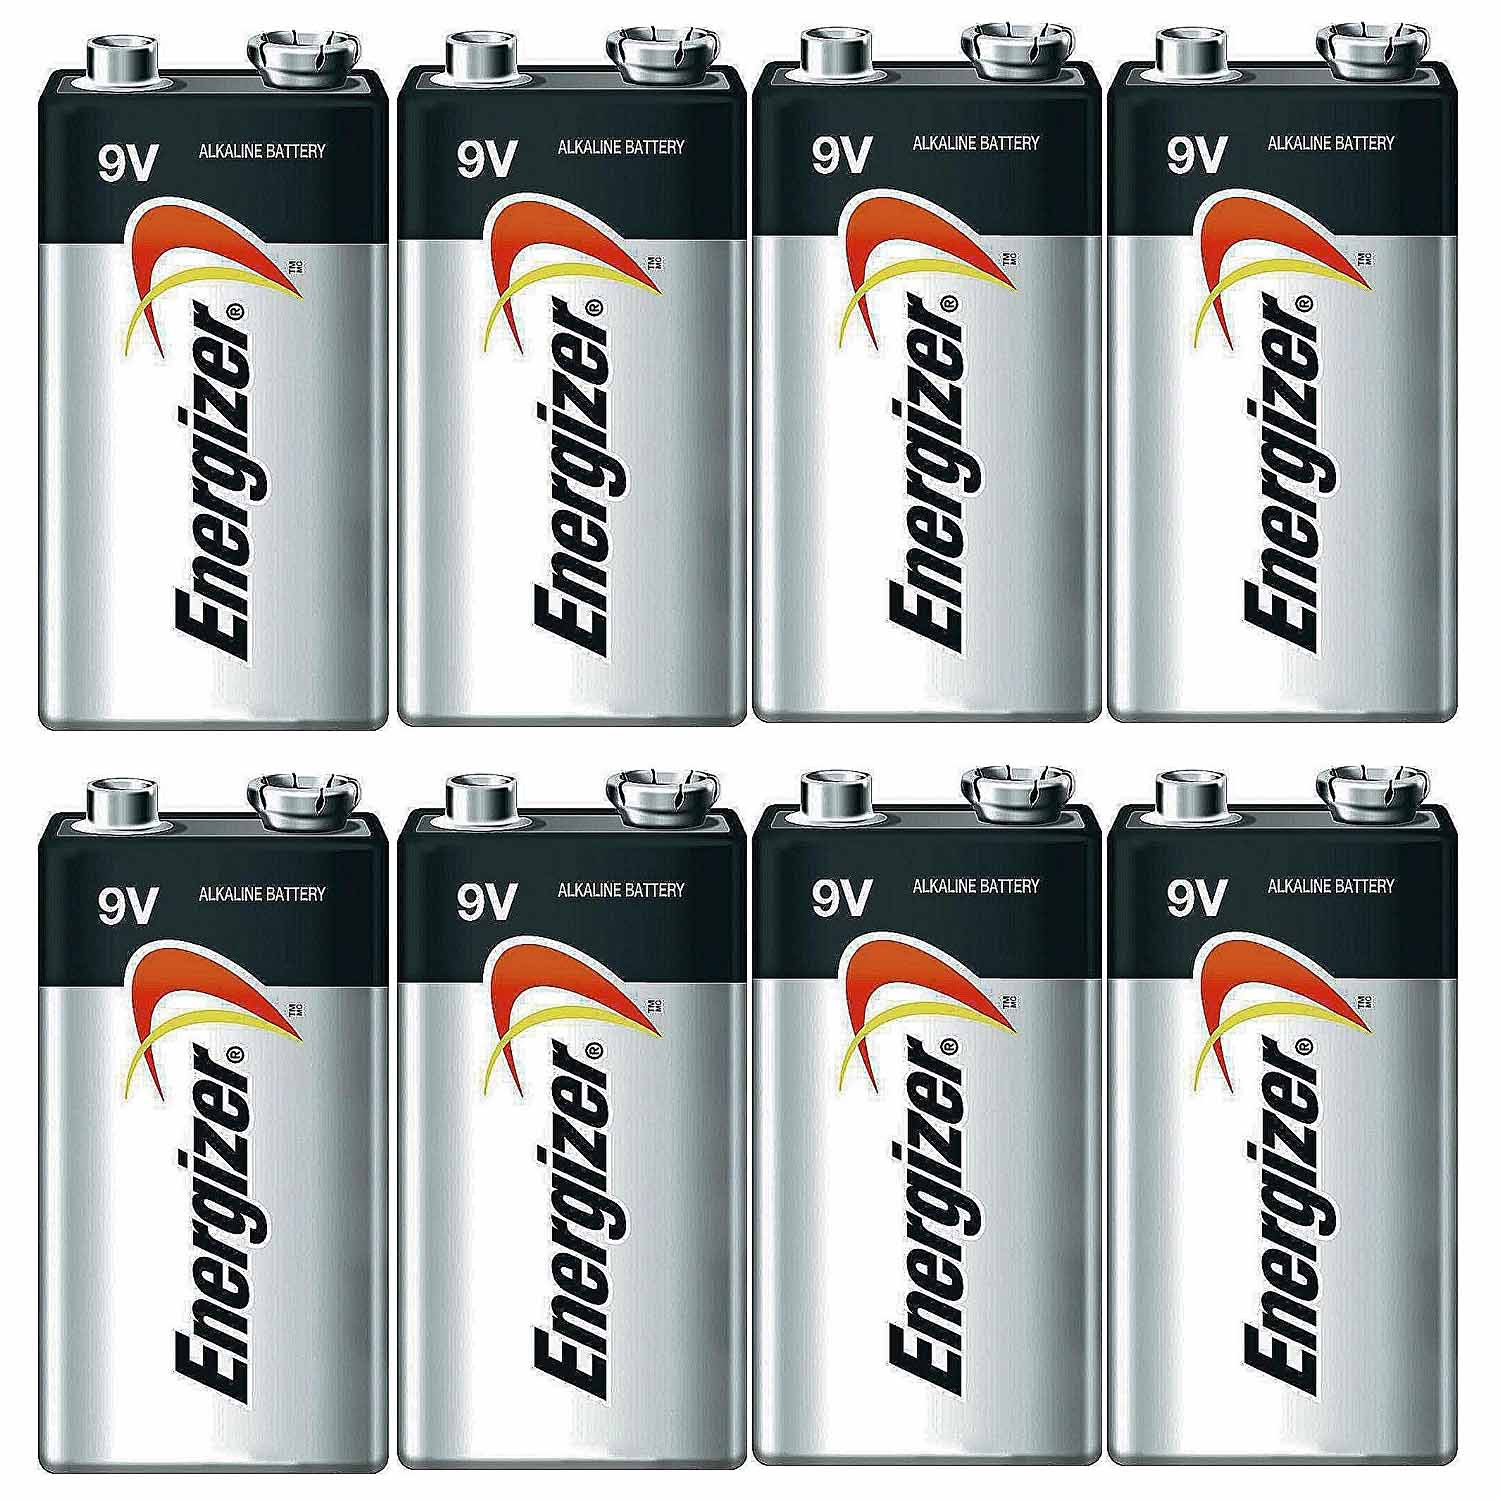 Energizer E522 Max 9 Volt Alkaline Battery - 8 Batteries + 30% Off!